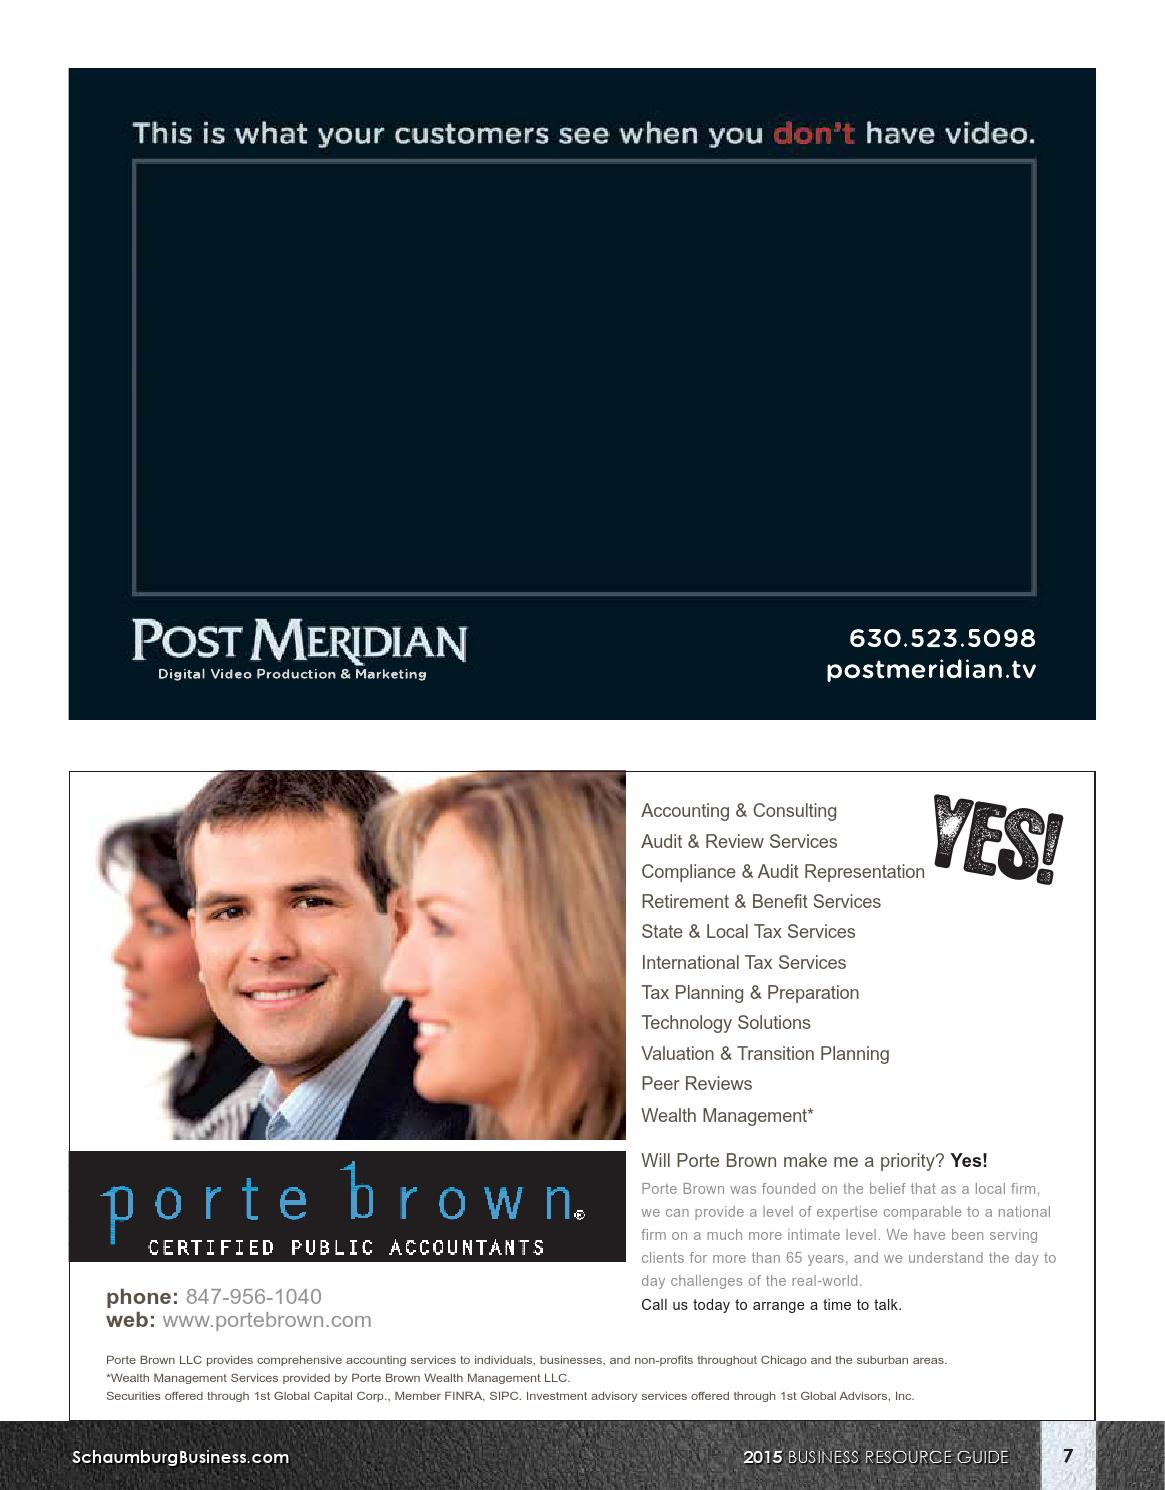 Schaumburg business association business resource guide by for Porte brown llc